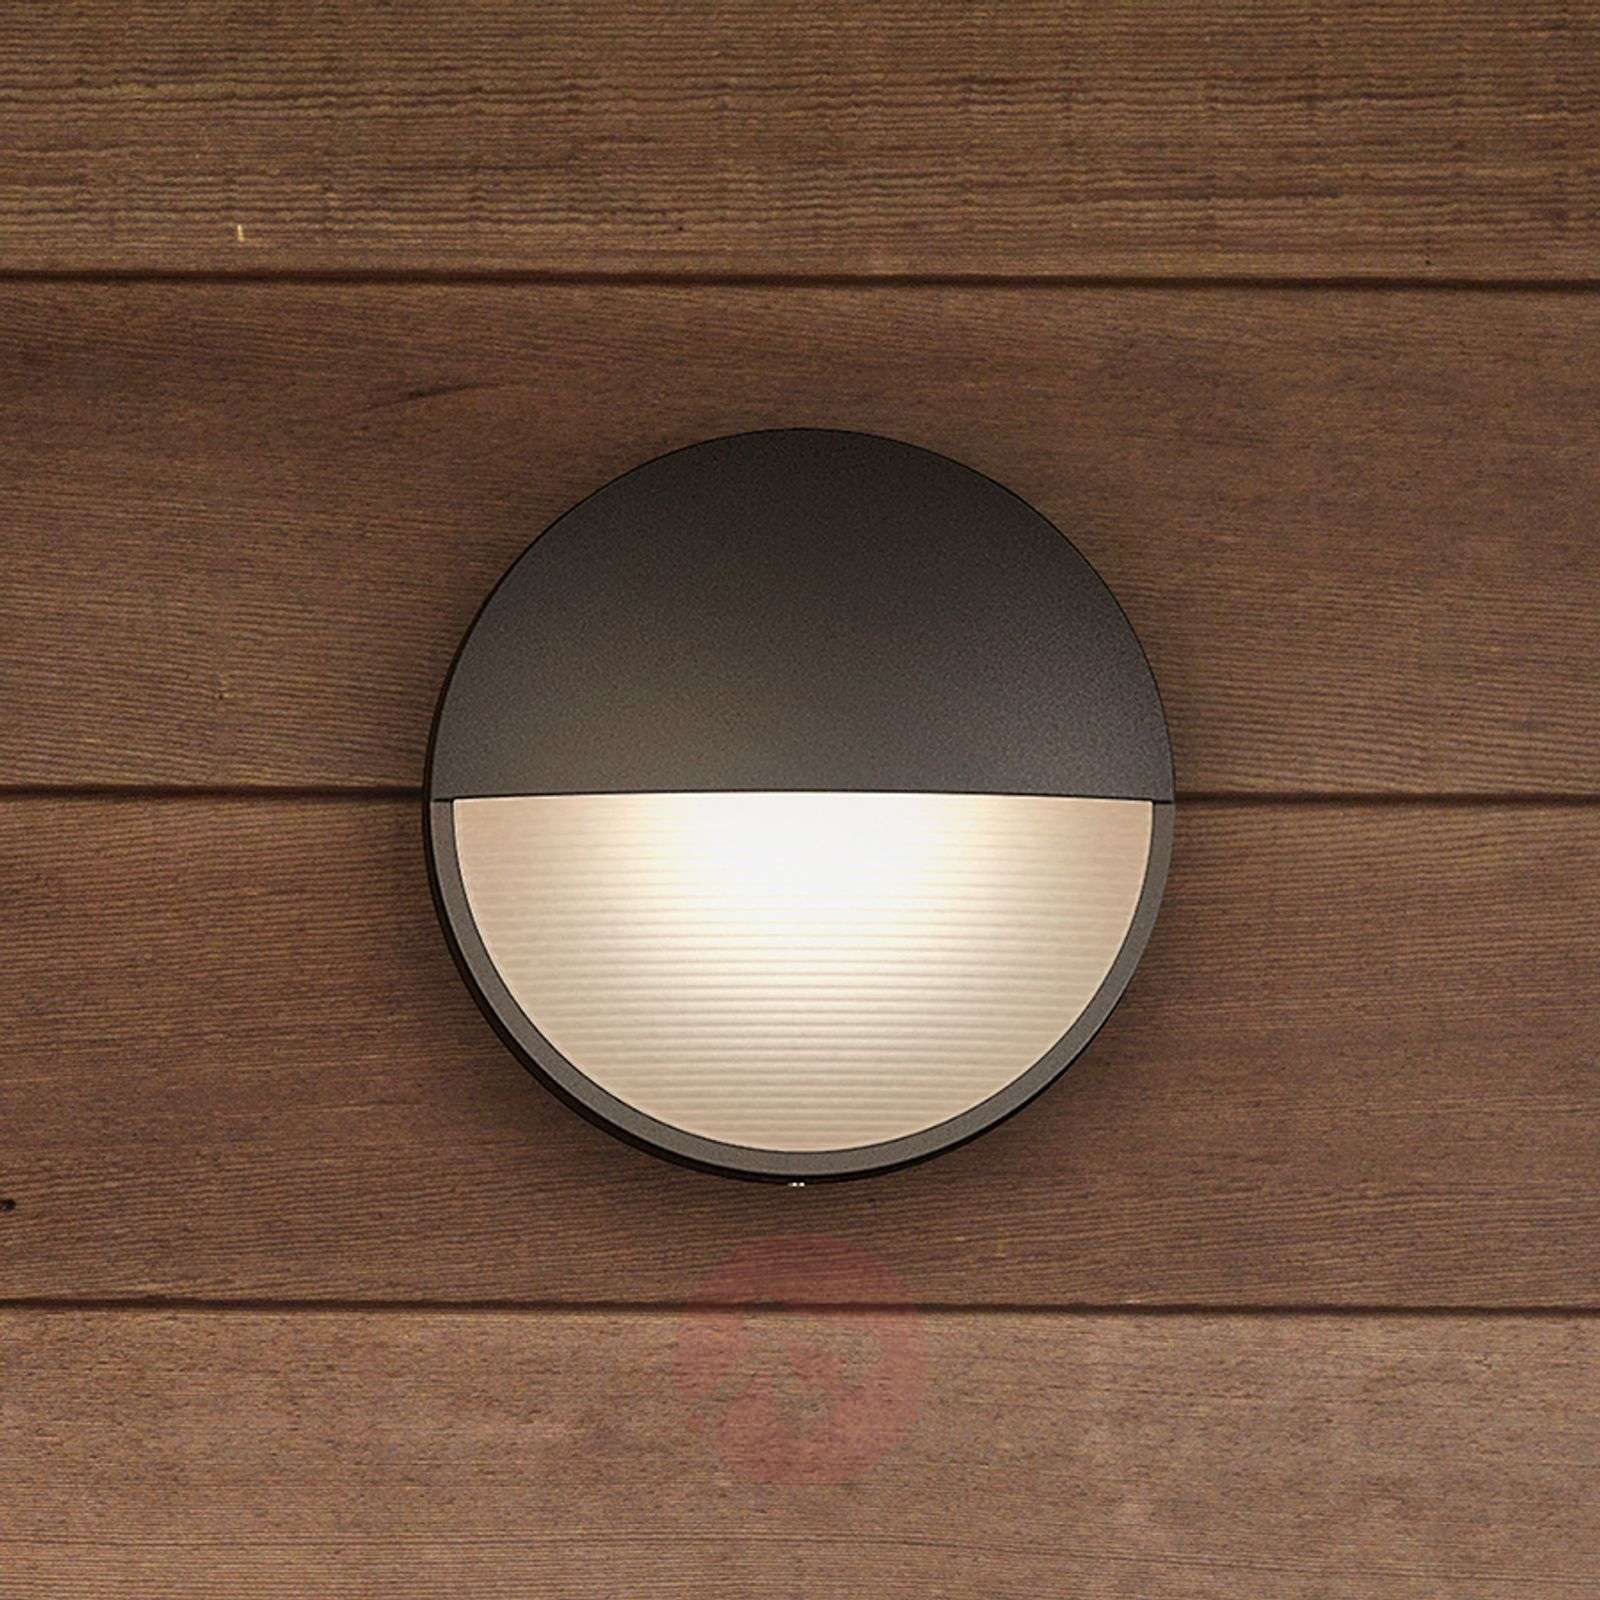 Capricorn anthracite-coloured LED wall light, IP44-7531784-02